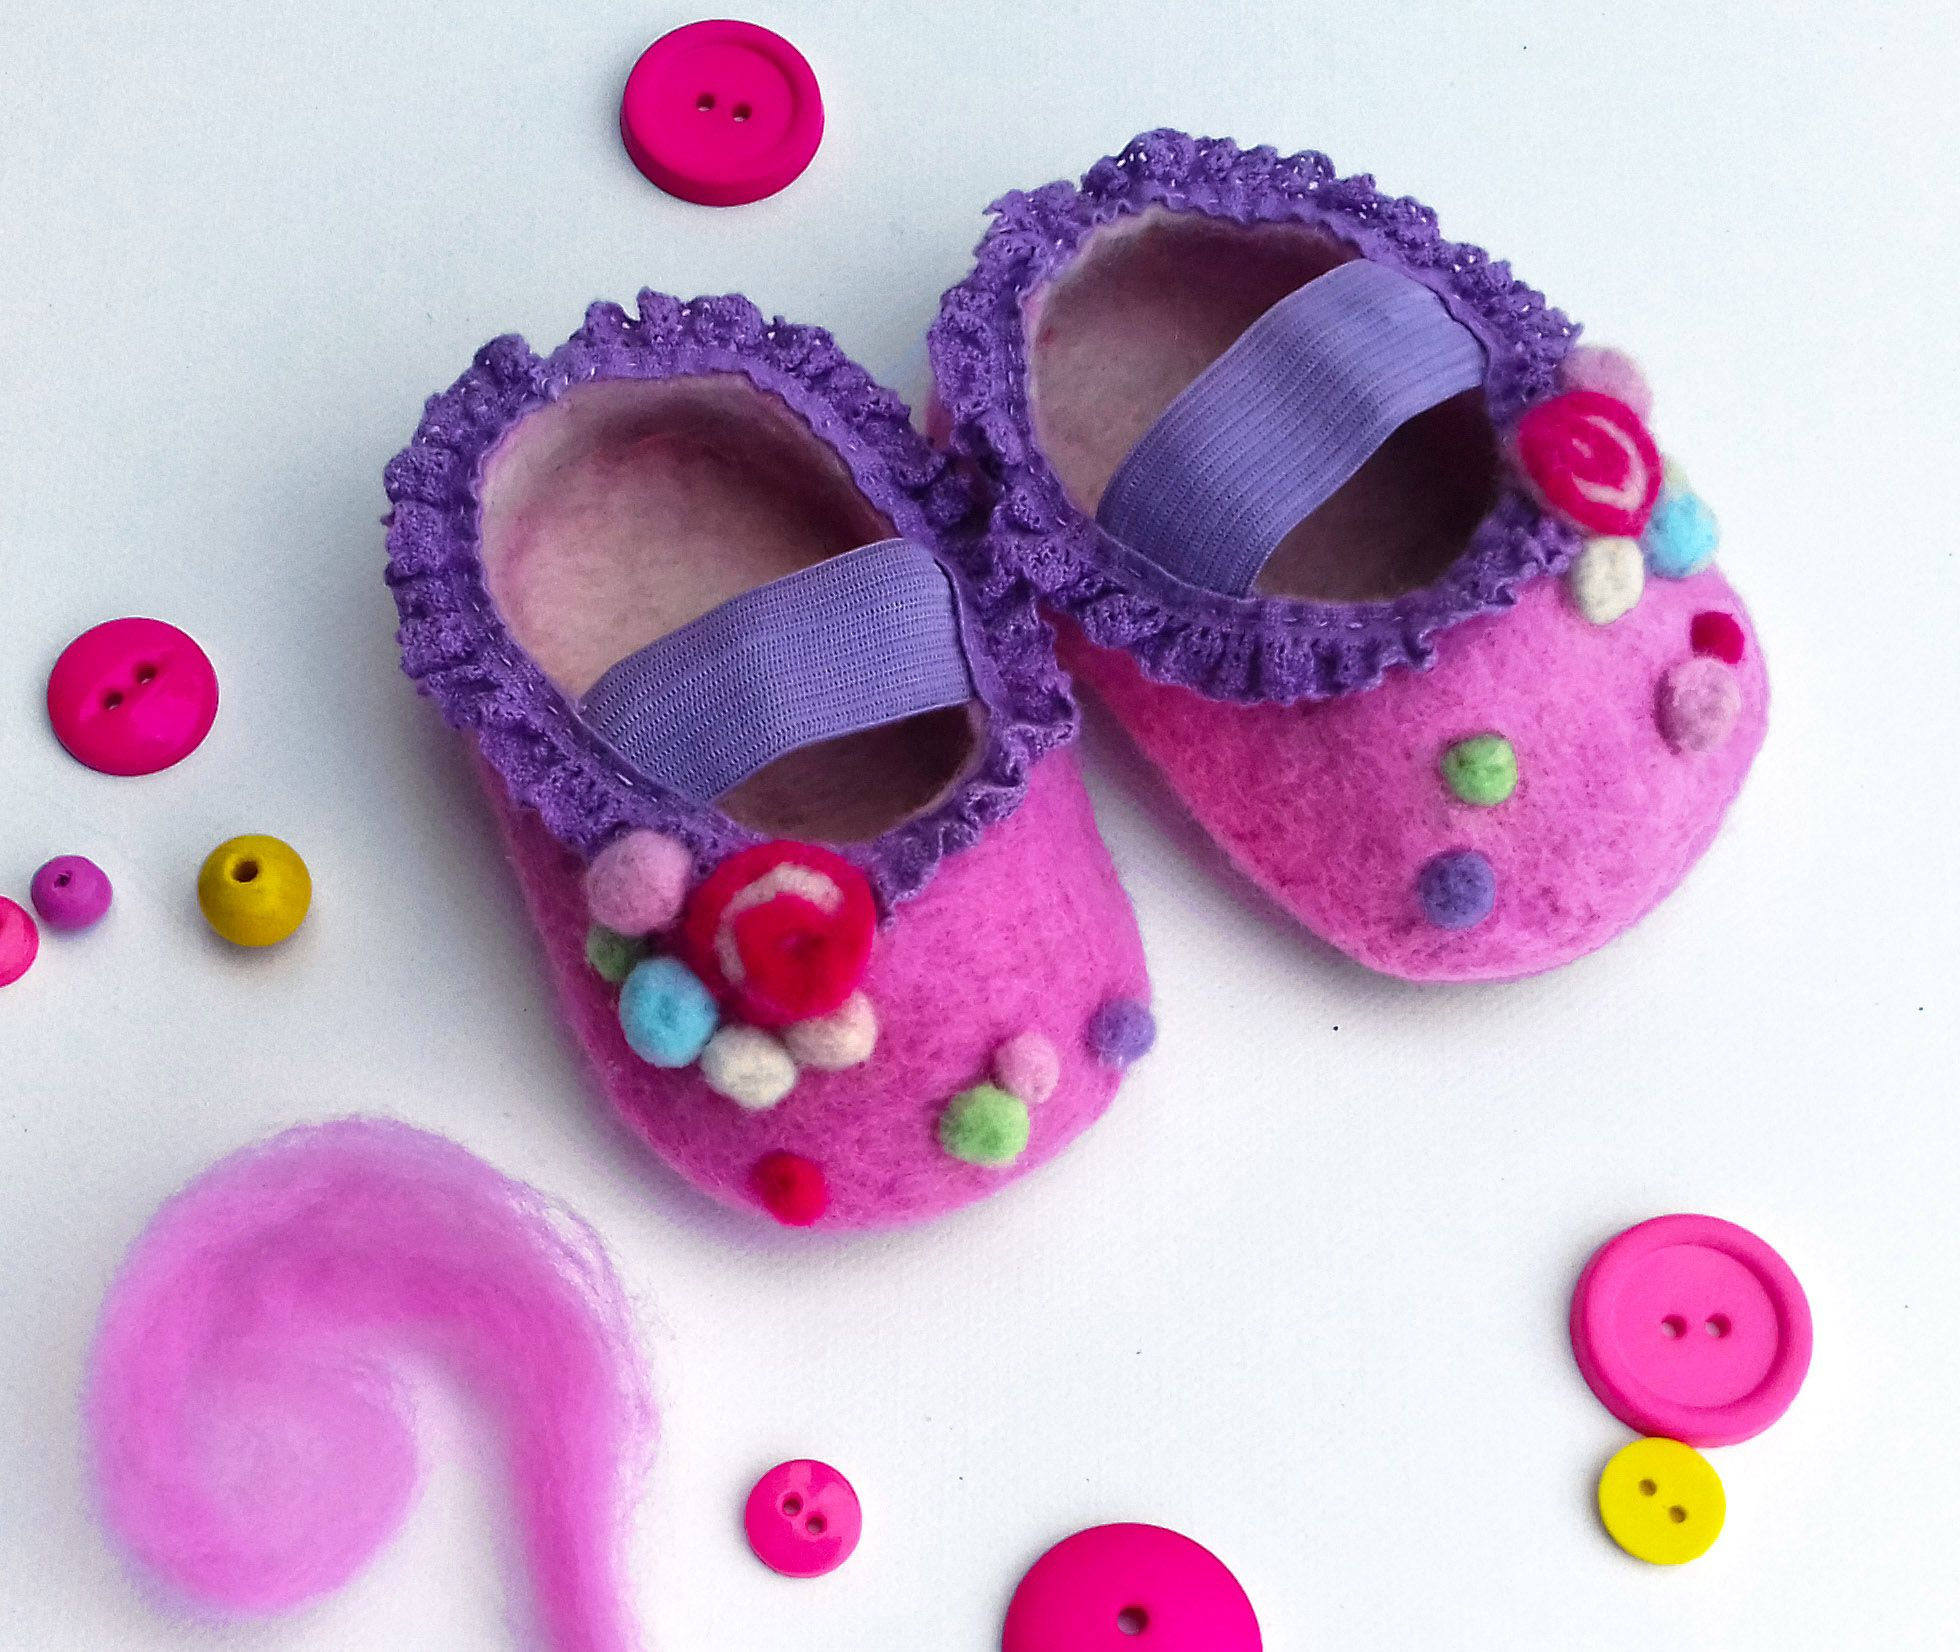 Candy Handmade baby shoes Wet felting candy sweets pink shoes